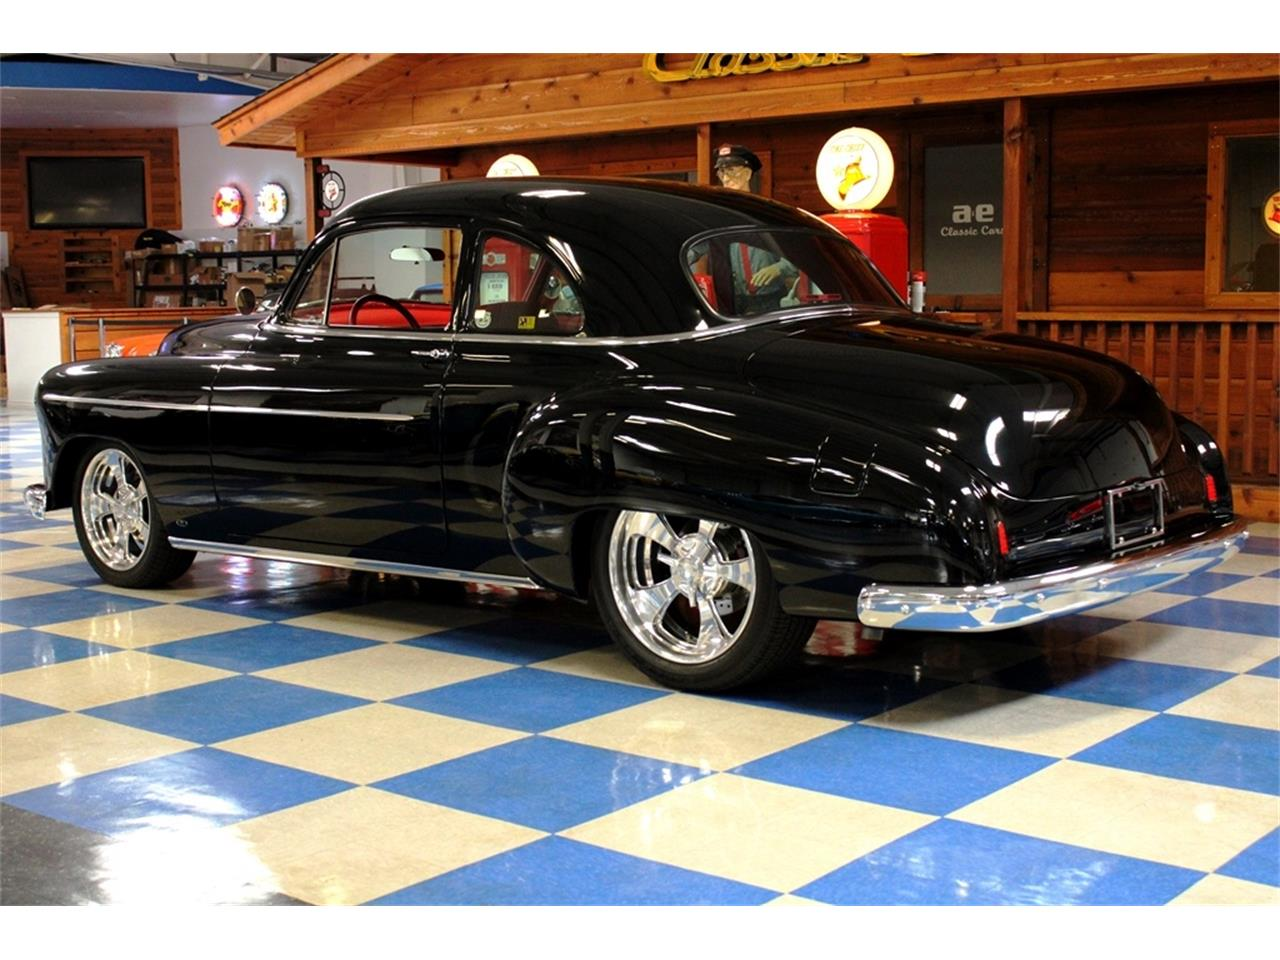 Large Picture of Classic '50 Chevrolet Styleline Deluxe Offered by A&E Classic Cars - QQK1